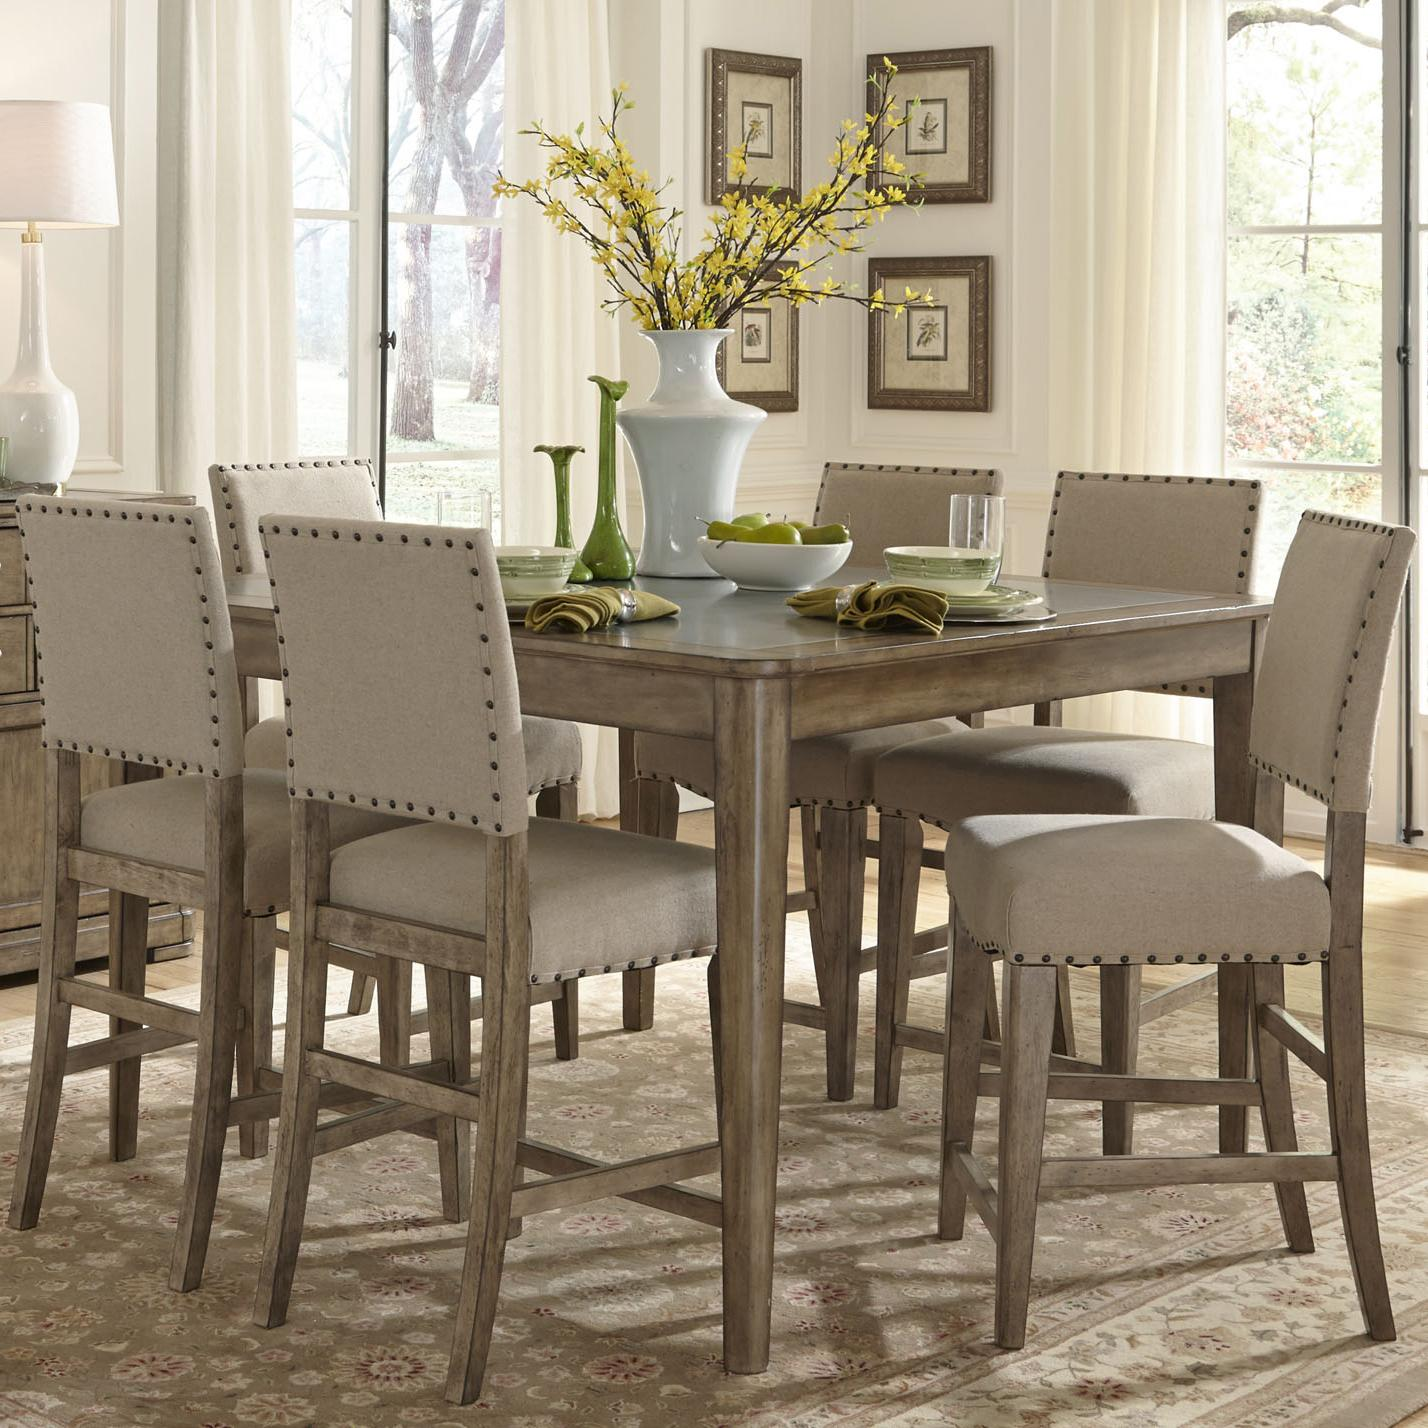 Dining Room Set Furniture: Liberty Furniture Weatherford Rustic Casual 7 Piece